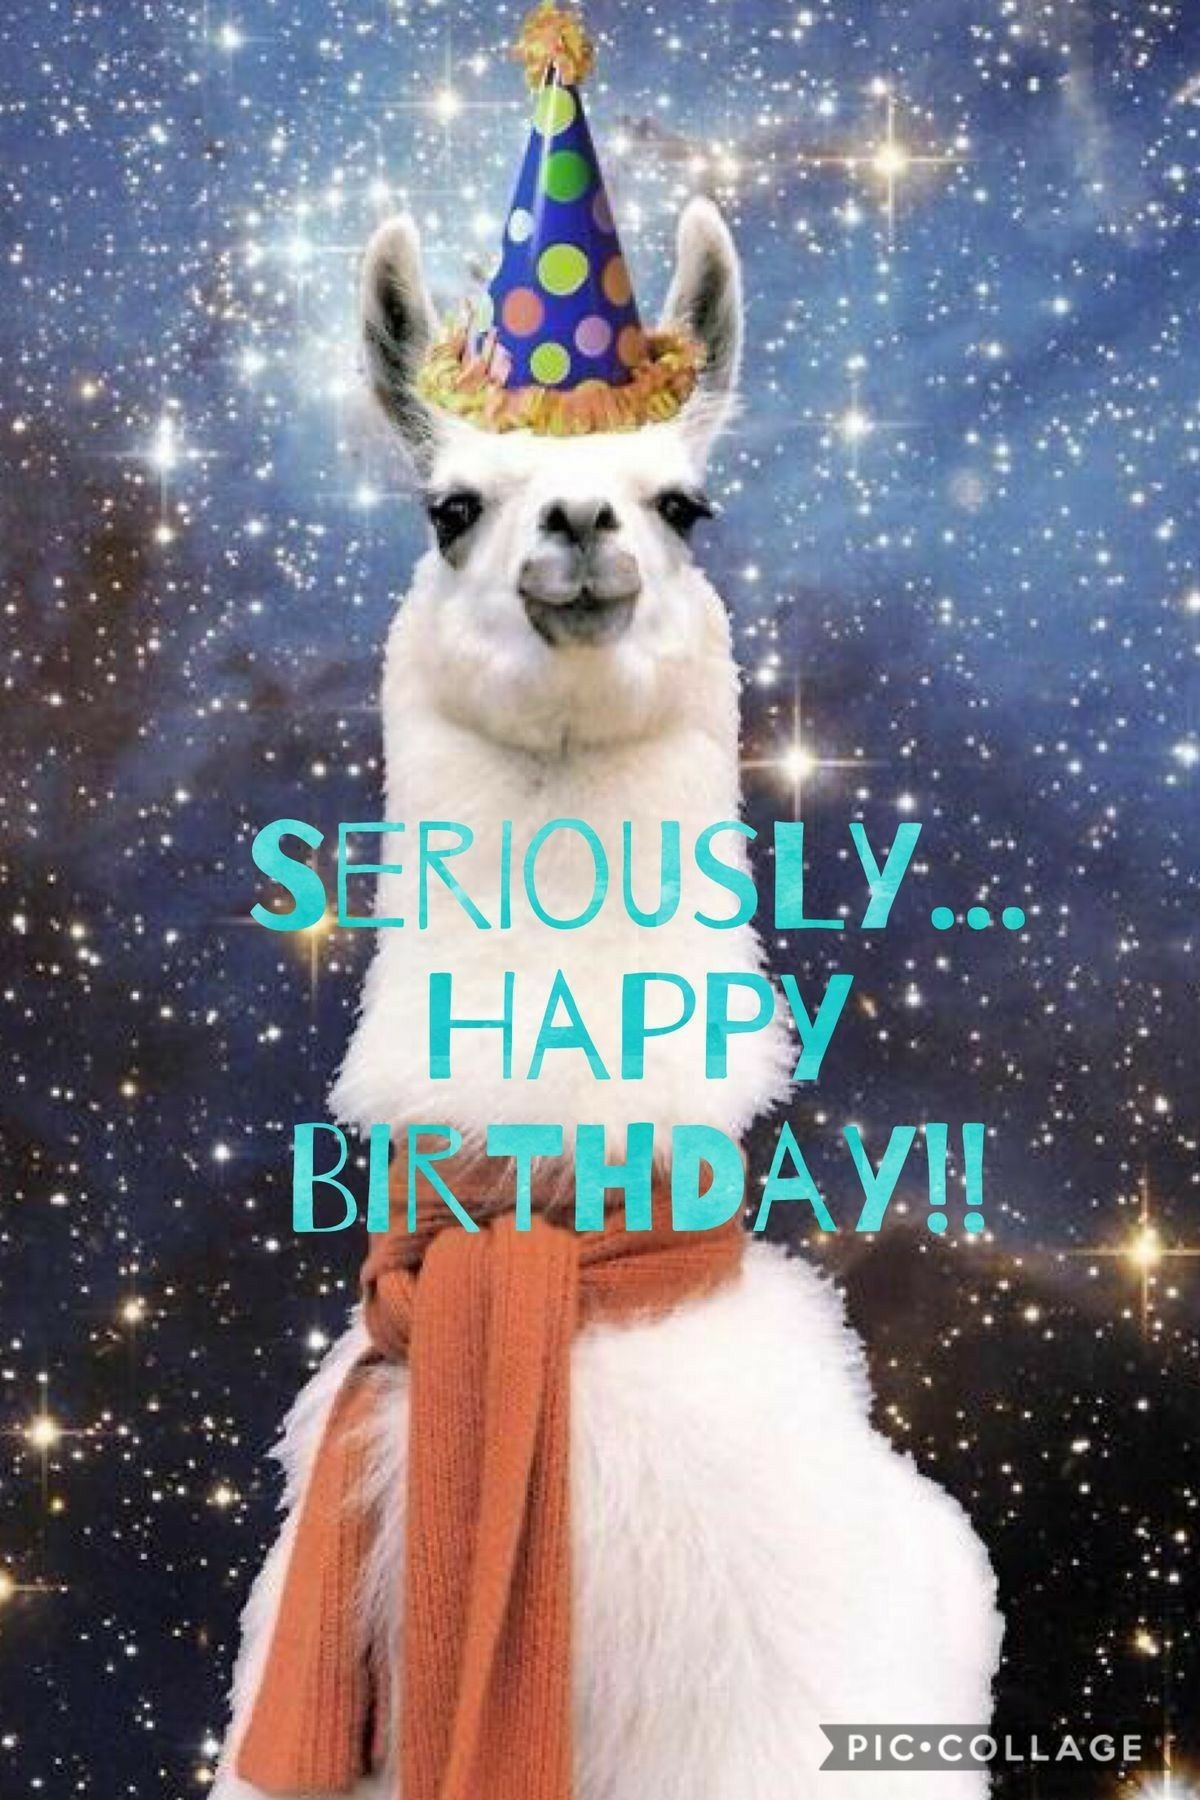 happybirthday birthday alpaca Happy birthday meme